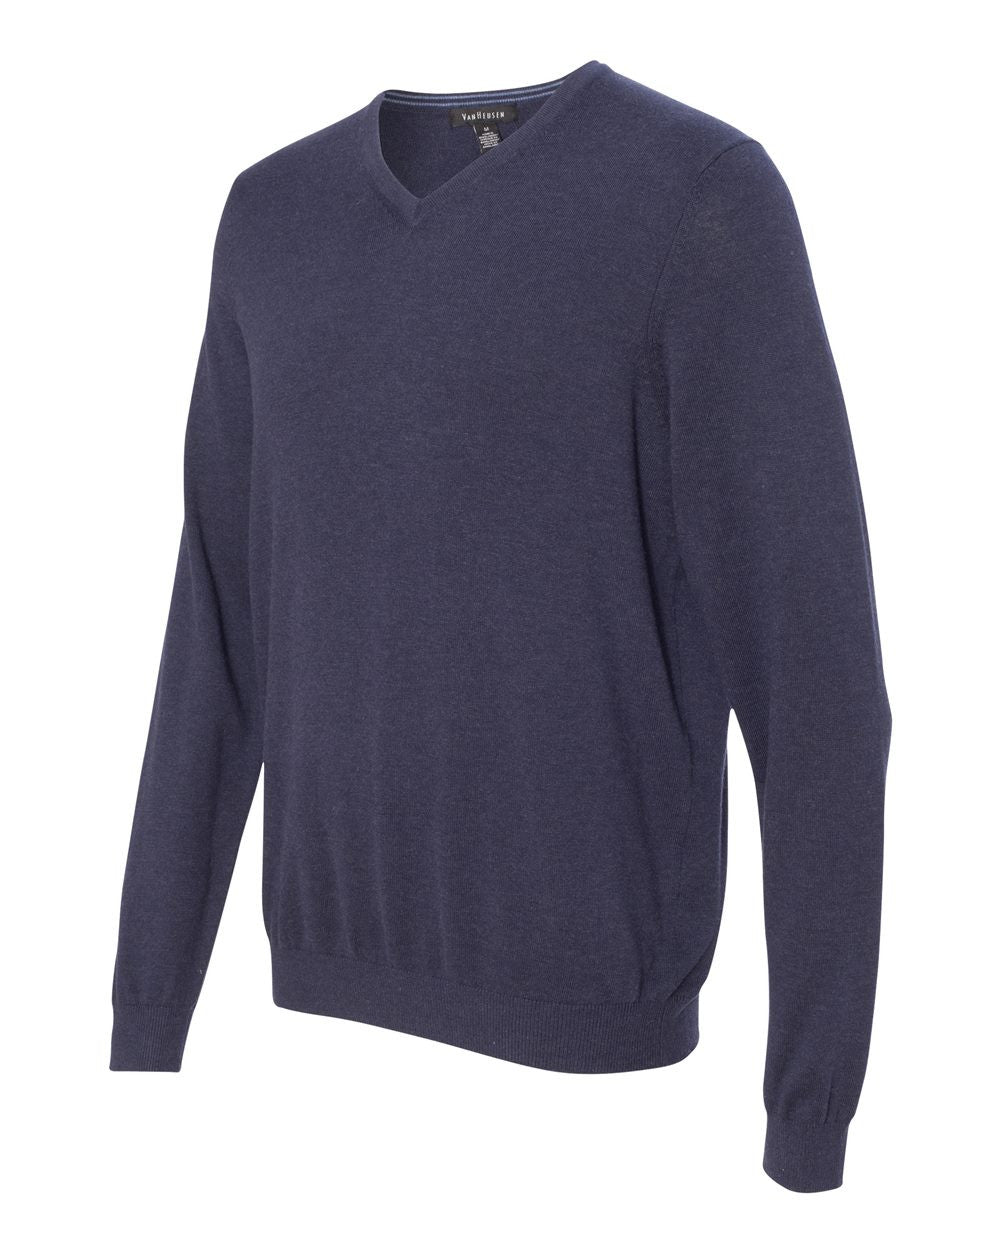 V neck Sweater for Men by Van Heusen - Discountedrack.com